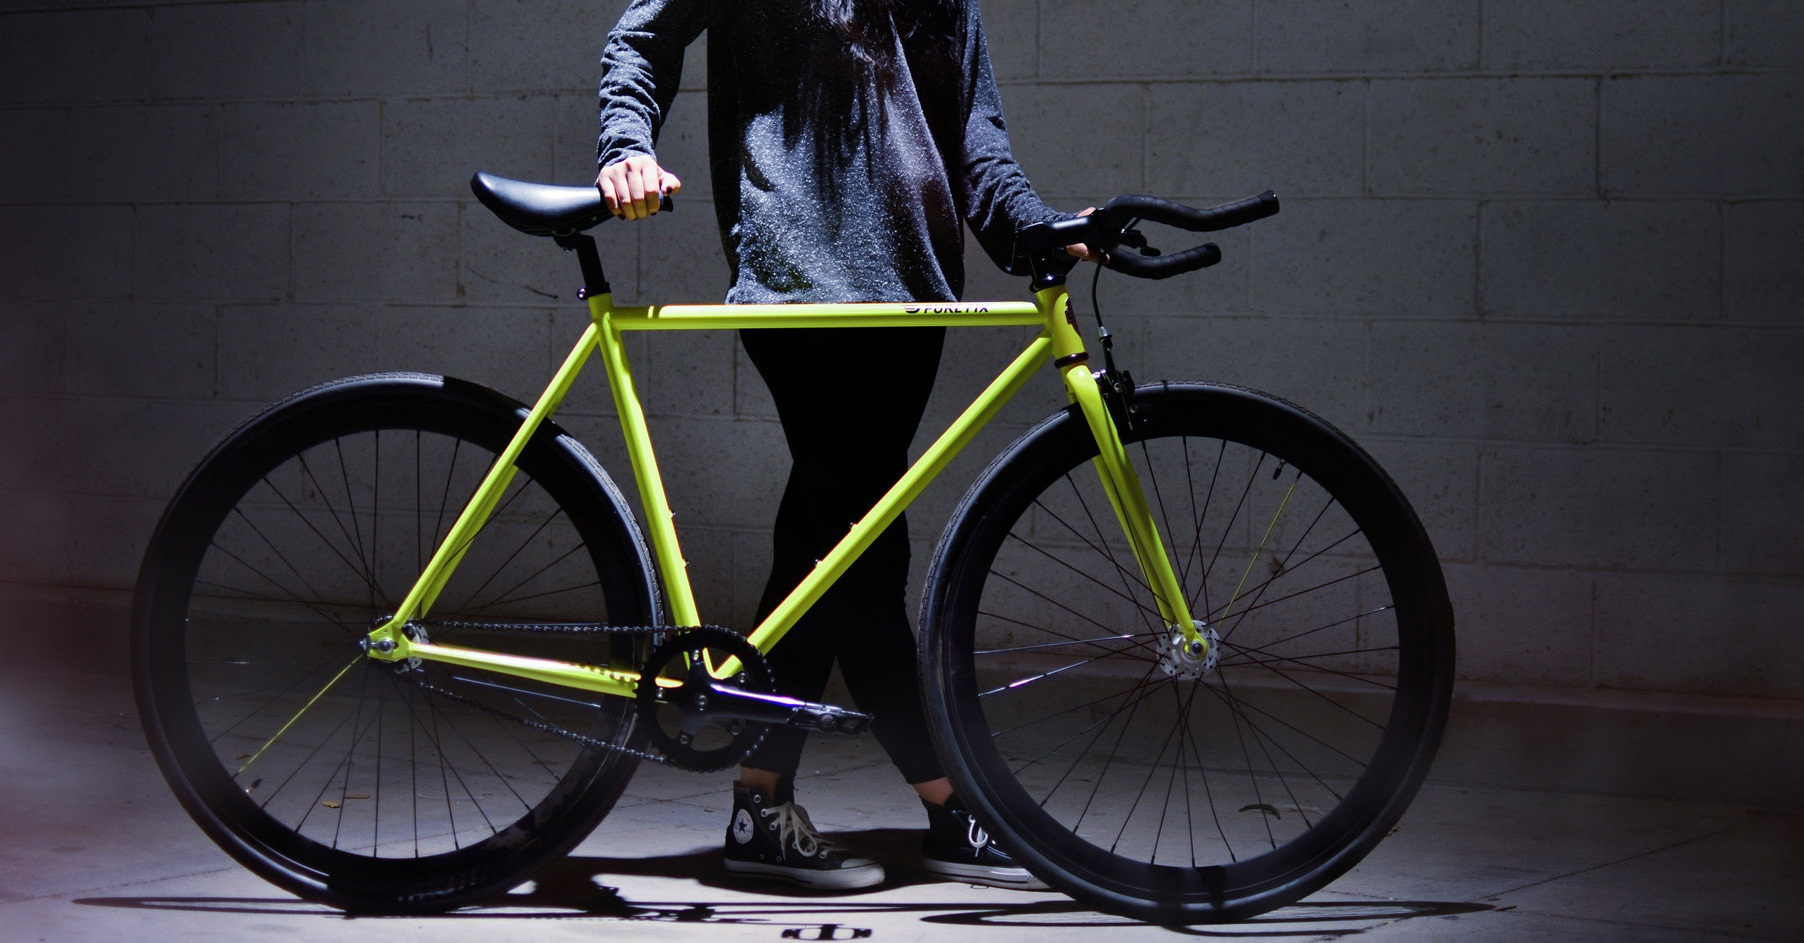 Pure Fix Glow in the Dark Fixed Gear Single Speed Fixie Bike Review